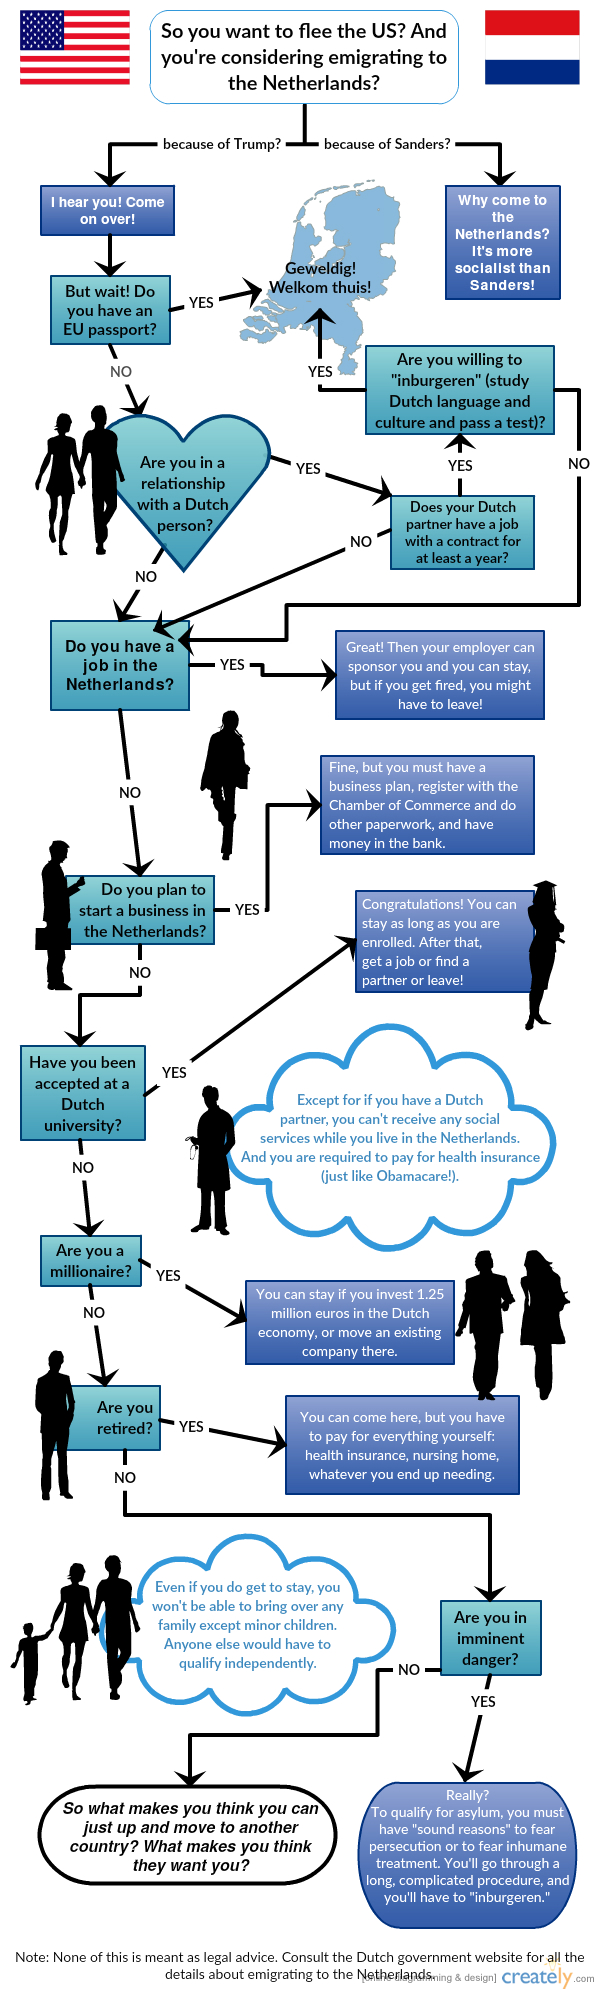 flow chart about how to emigrate to the Netherlands